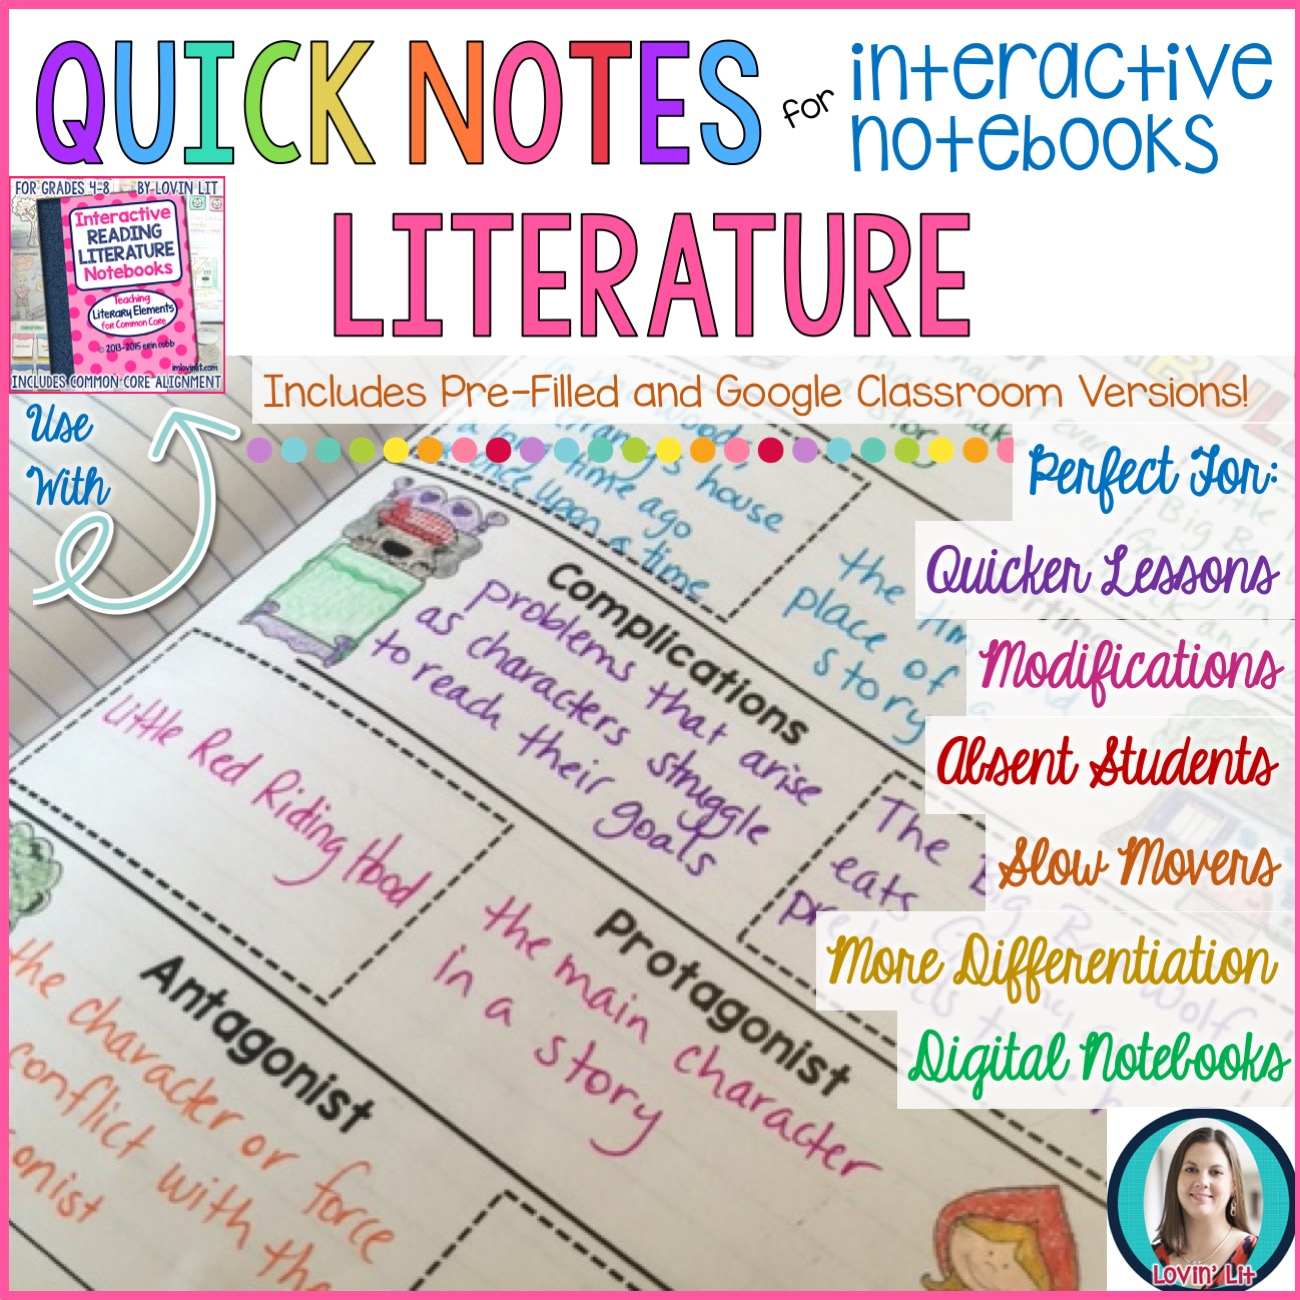 The SOLUTION to All of Your Interactive Notebook Woes IS HERE!